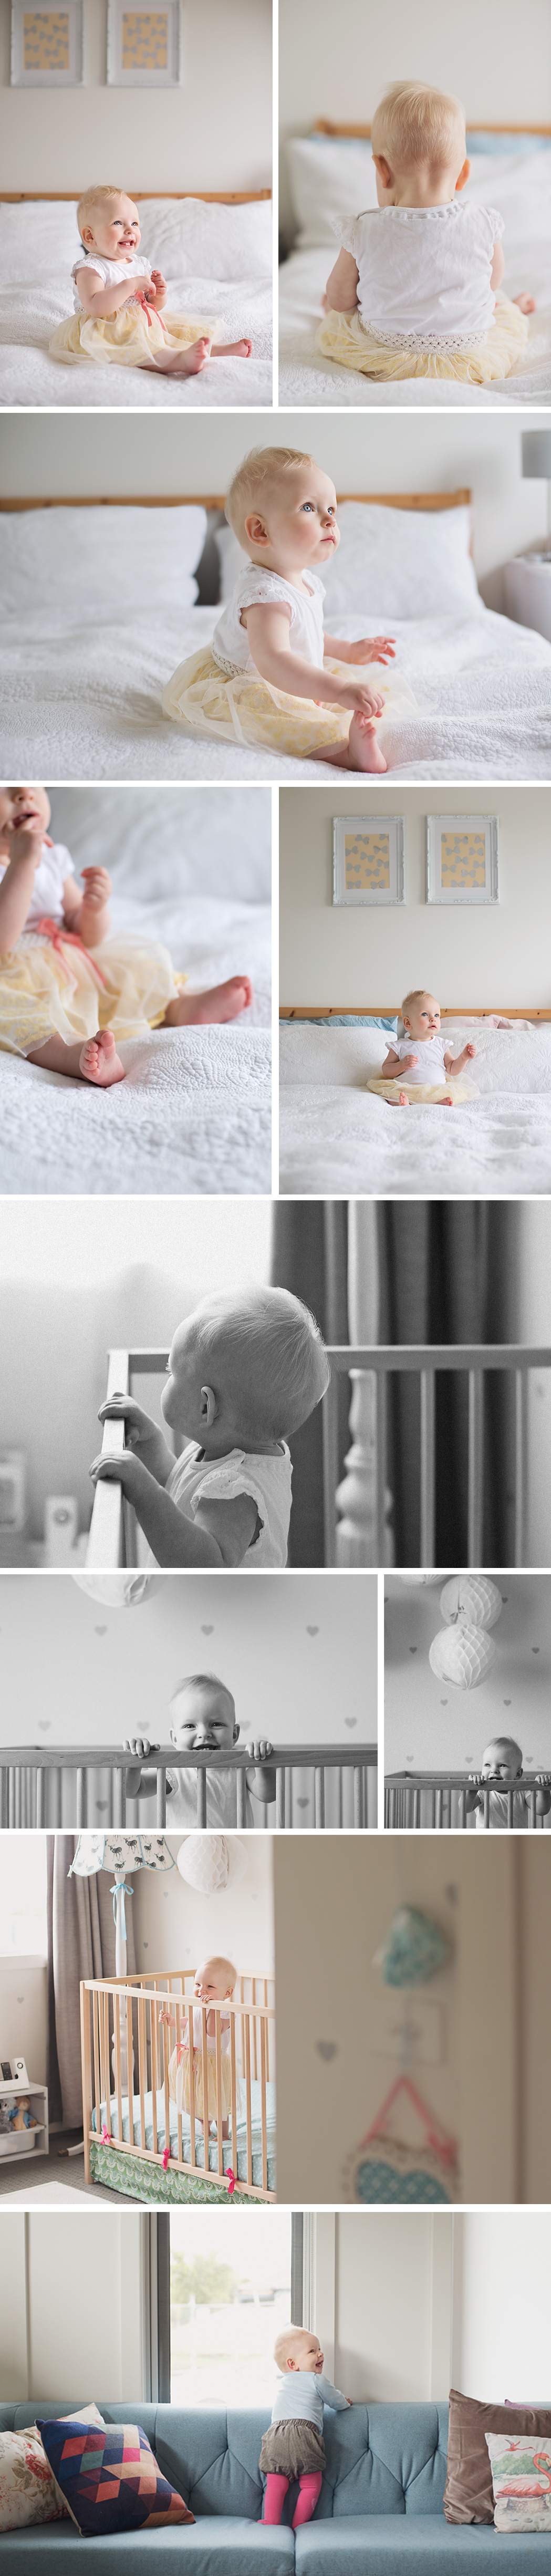 1-Baby-Photographer-Melbourne.jpg